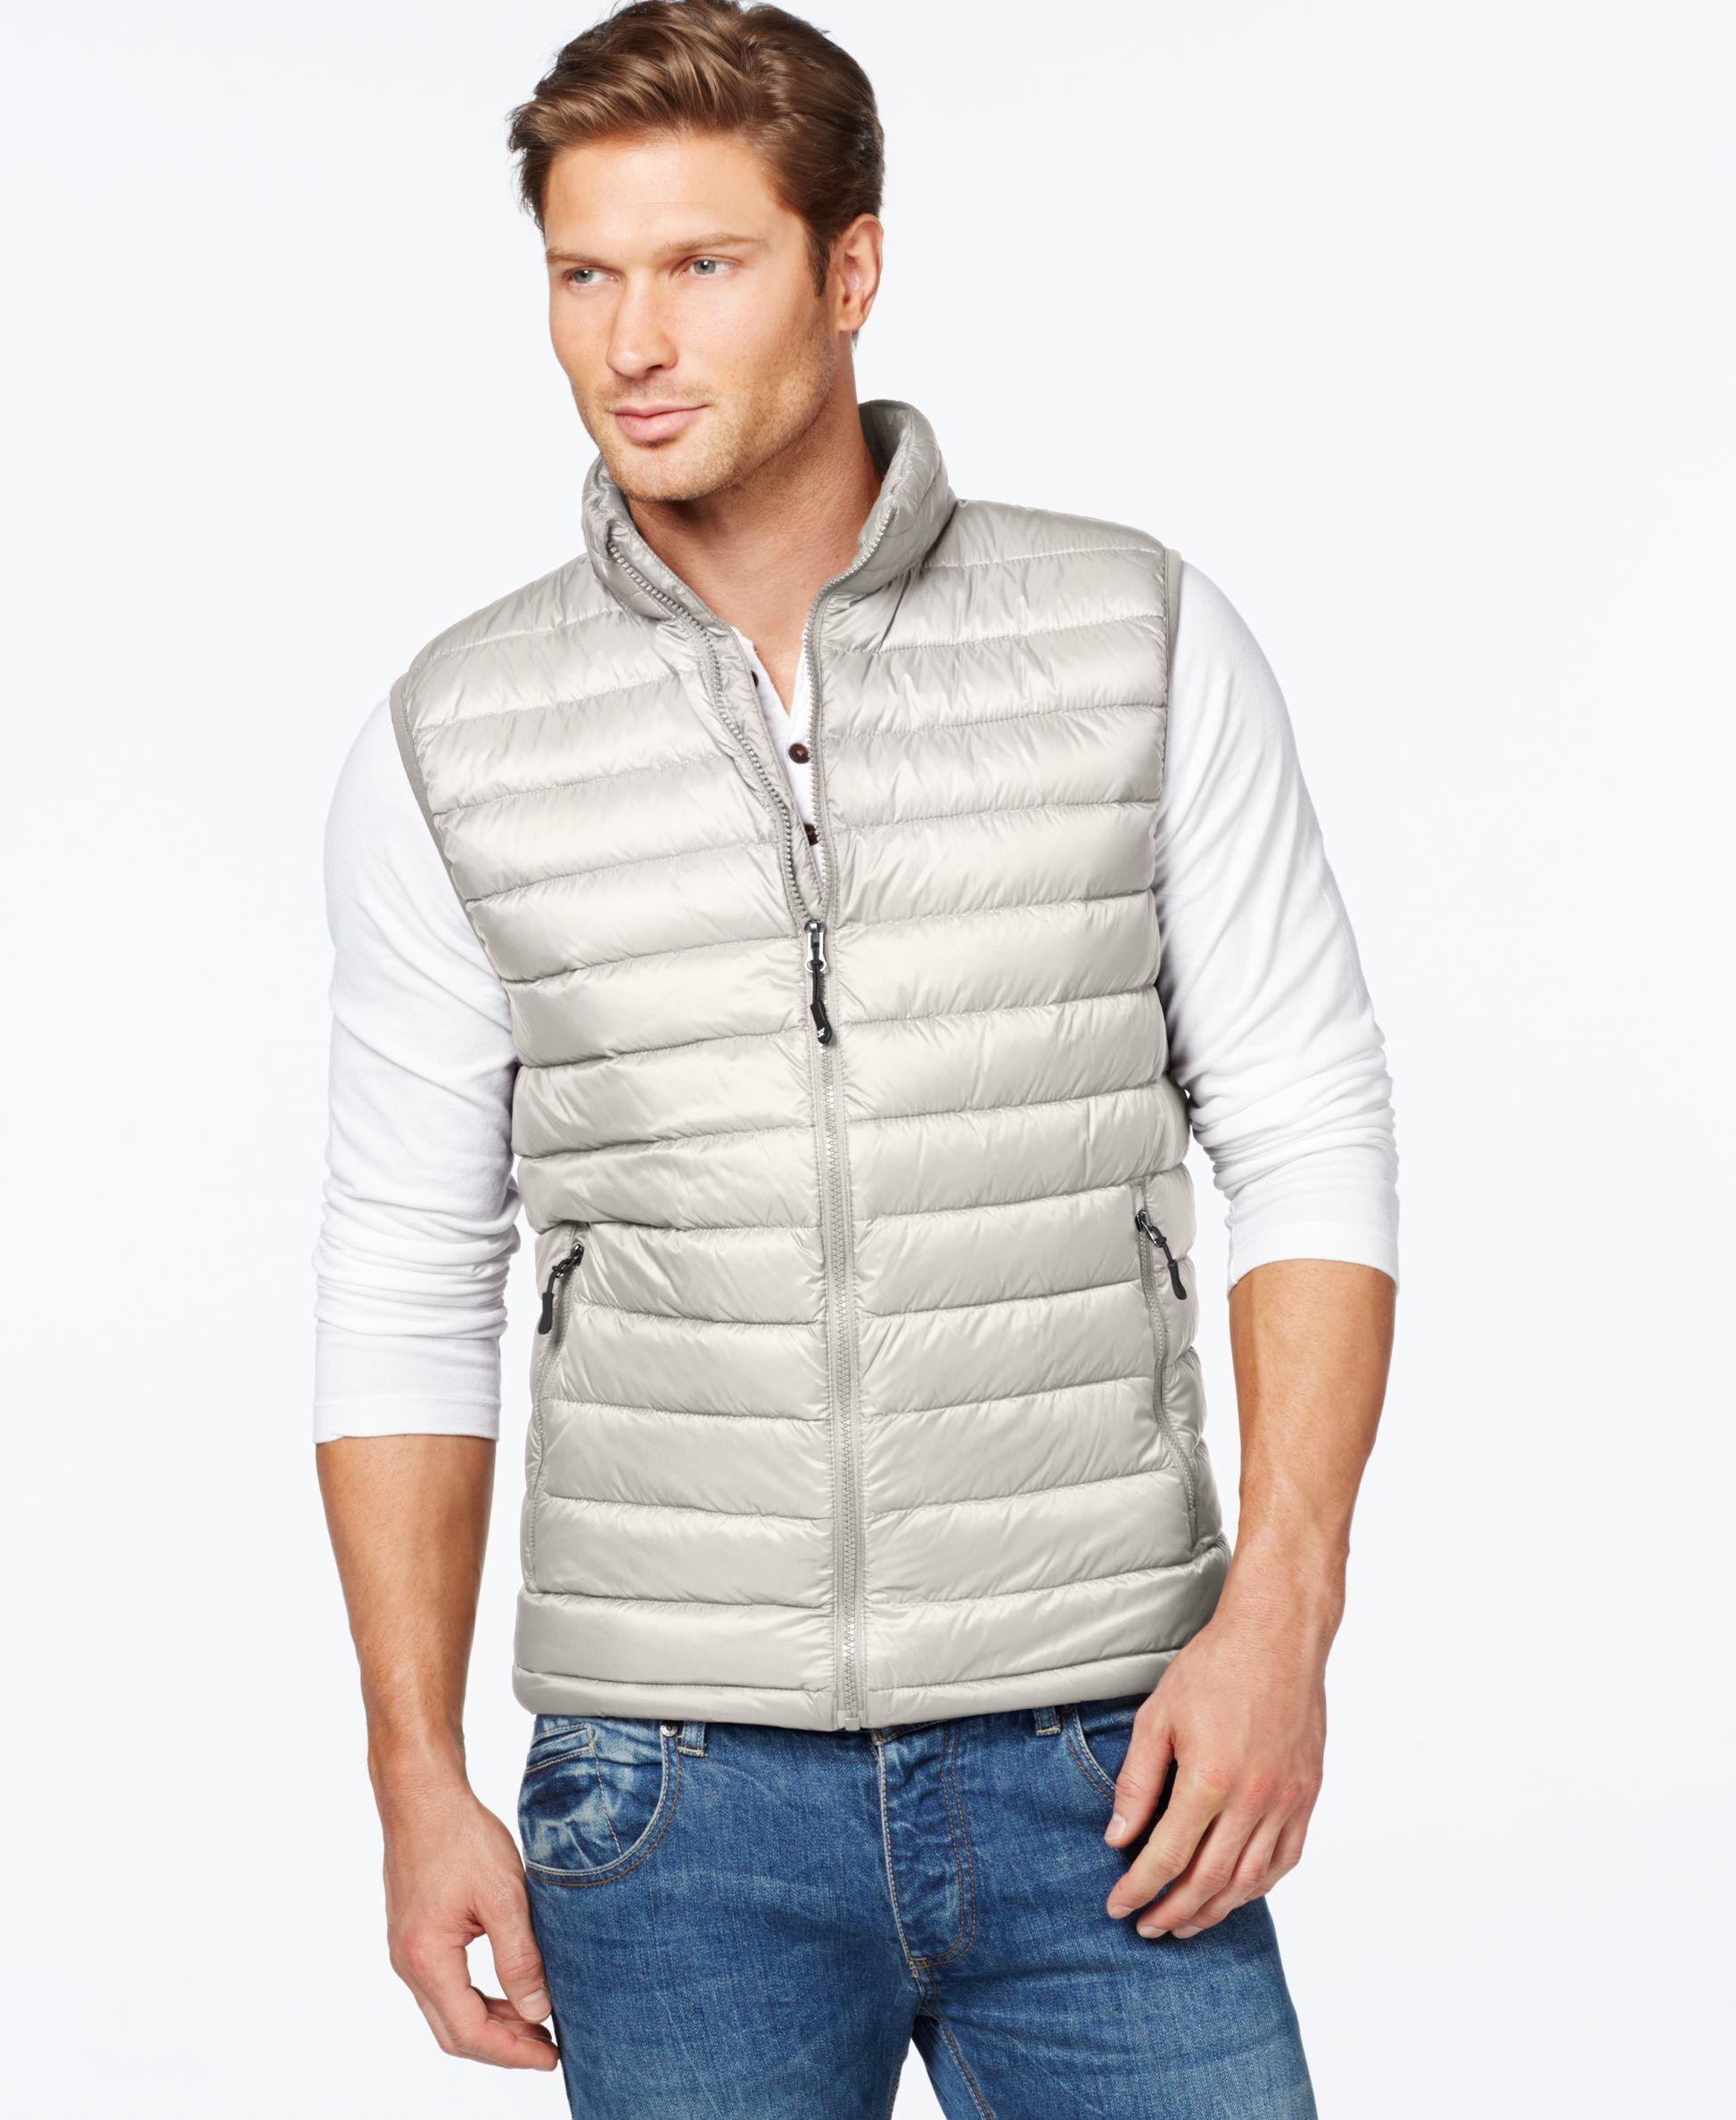 Shop the Latest Collection of Puffer Jackets & Coats for Men Online at gtacashbank.ga FREE SHIPPING AVAILABLE! Macy's Presents: The Edit- A curated mix of fashion and inspiration Check It Out. Michael Kors Men's Down Packable Puffer Jacket, Created for Macy's.